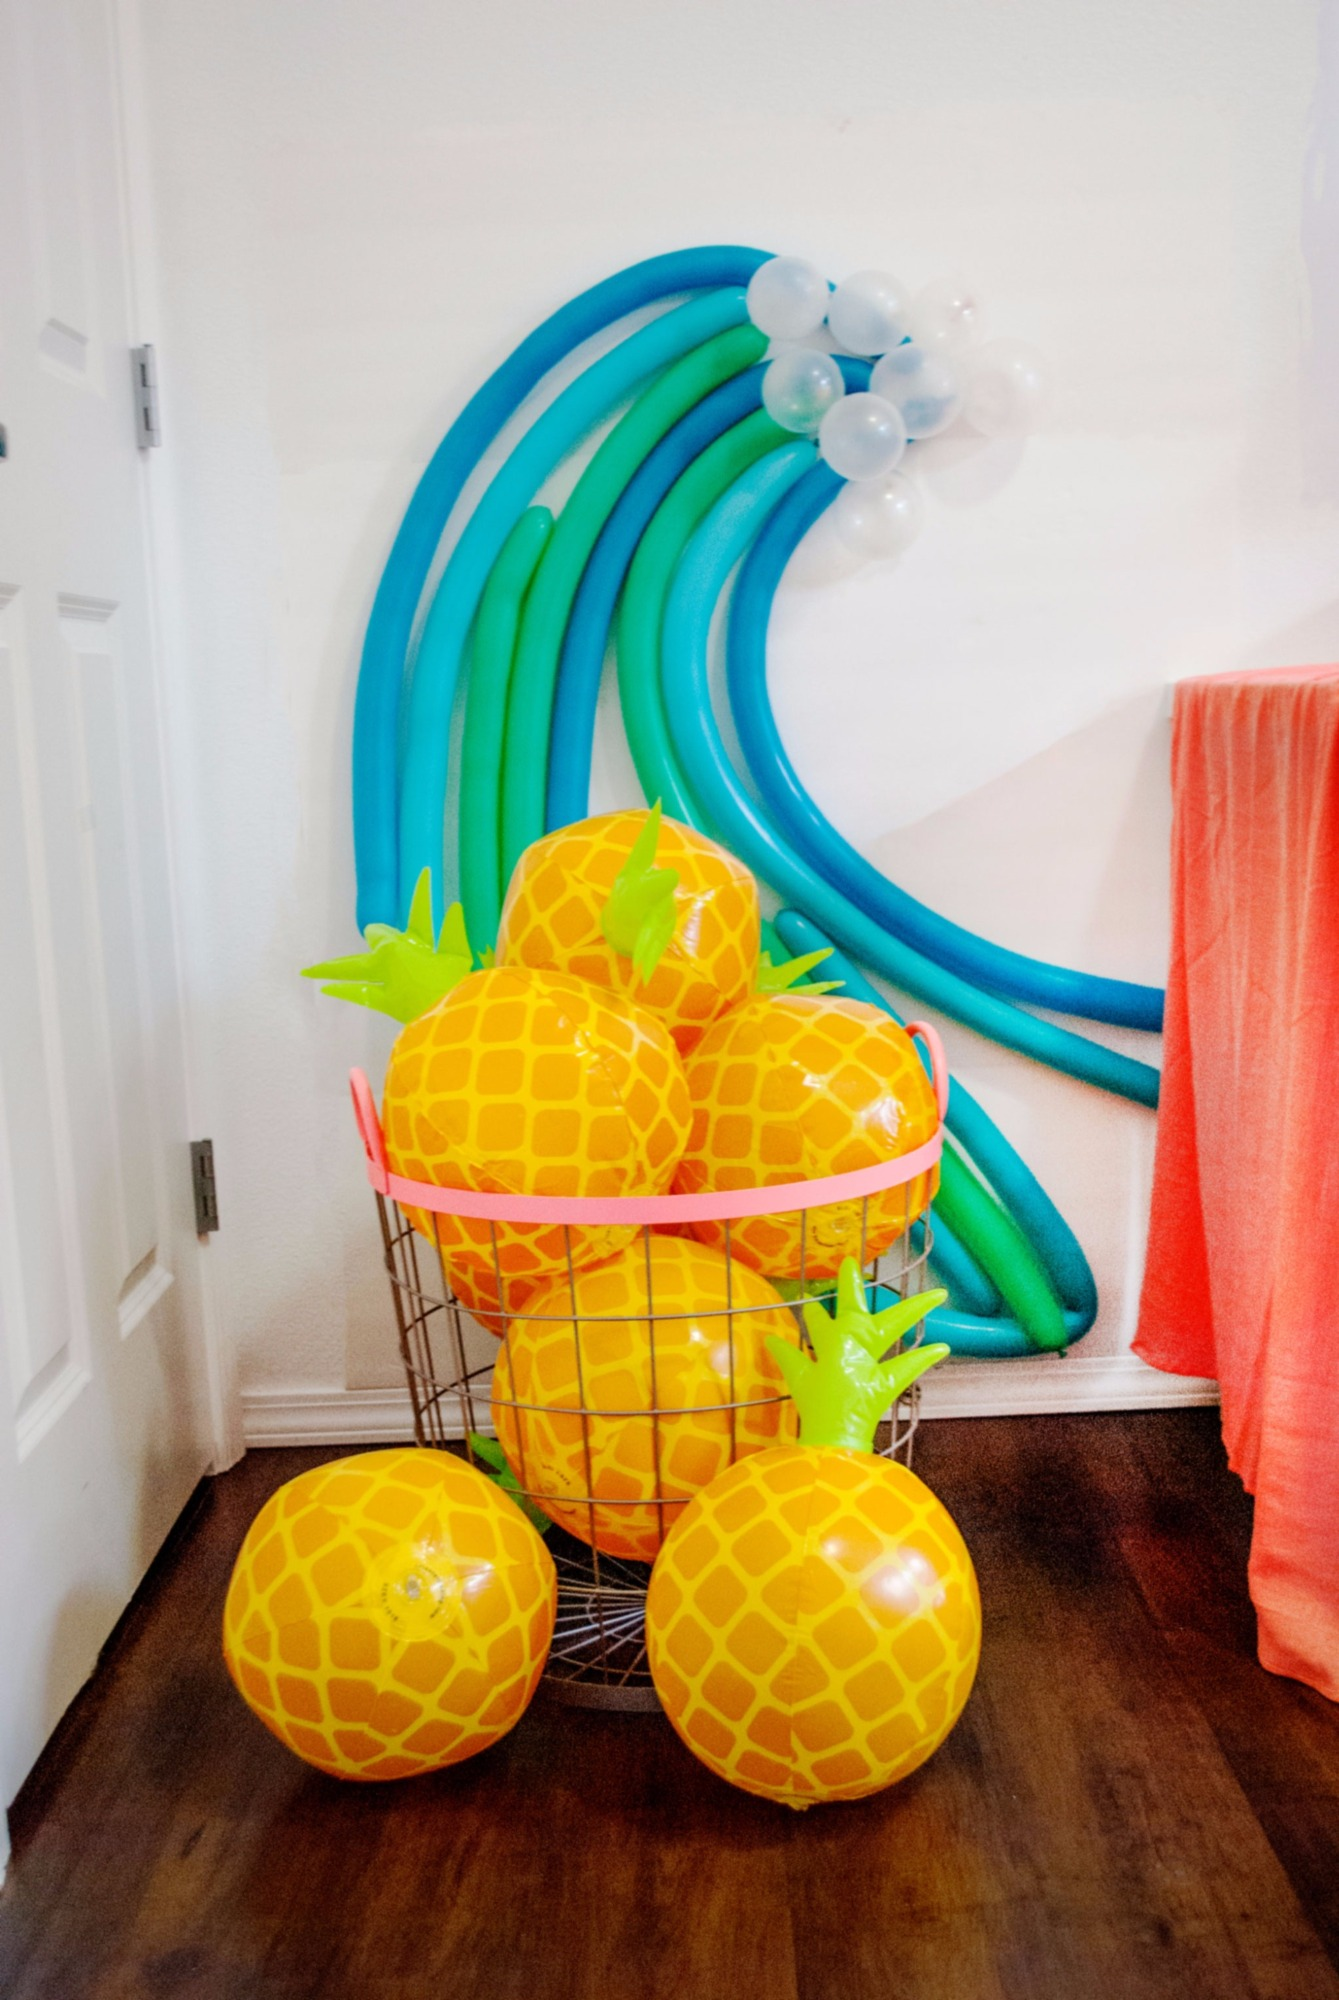 Pineapple Inflatables and Balloons from Moana Birthday Party by Itsy Belle Studio | Black Twine